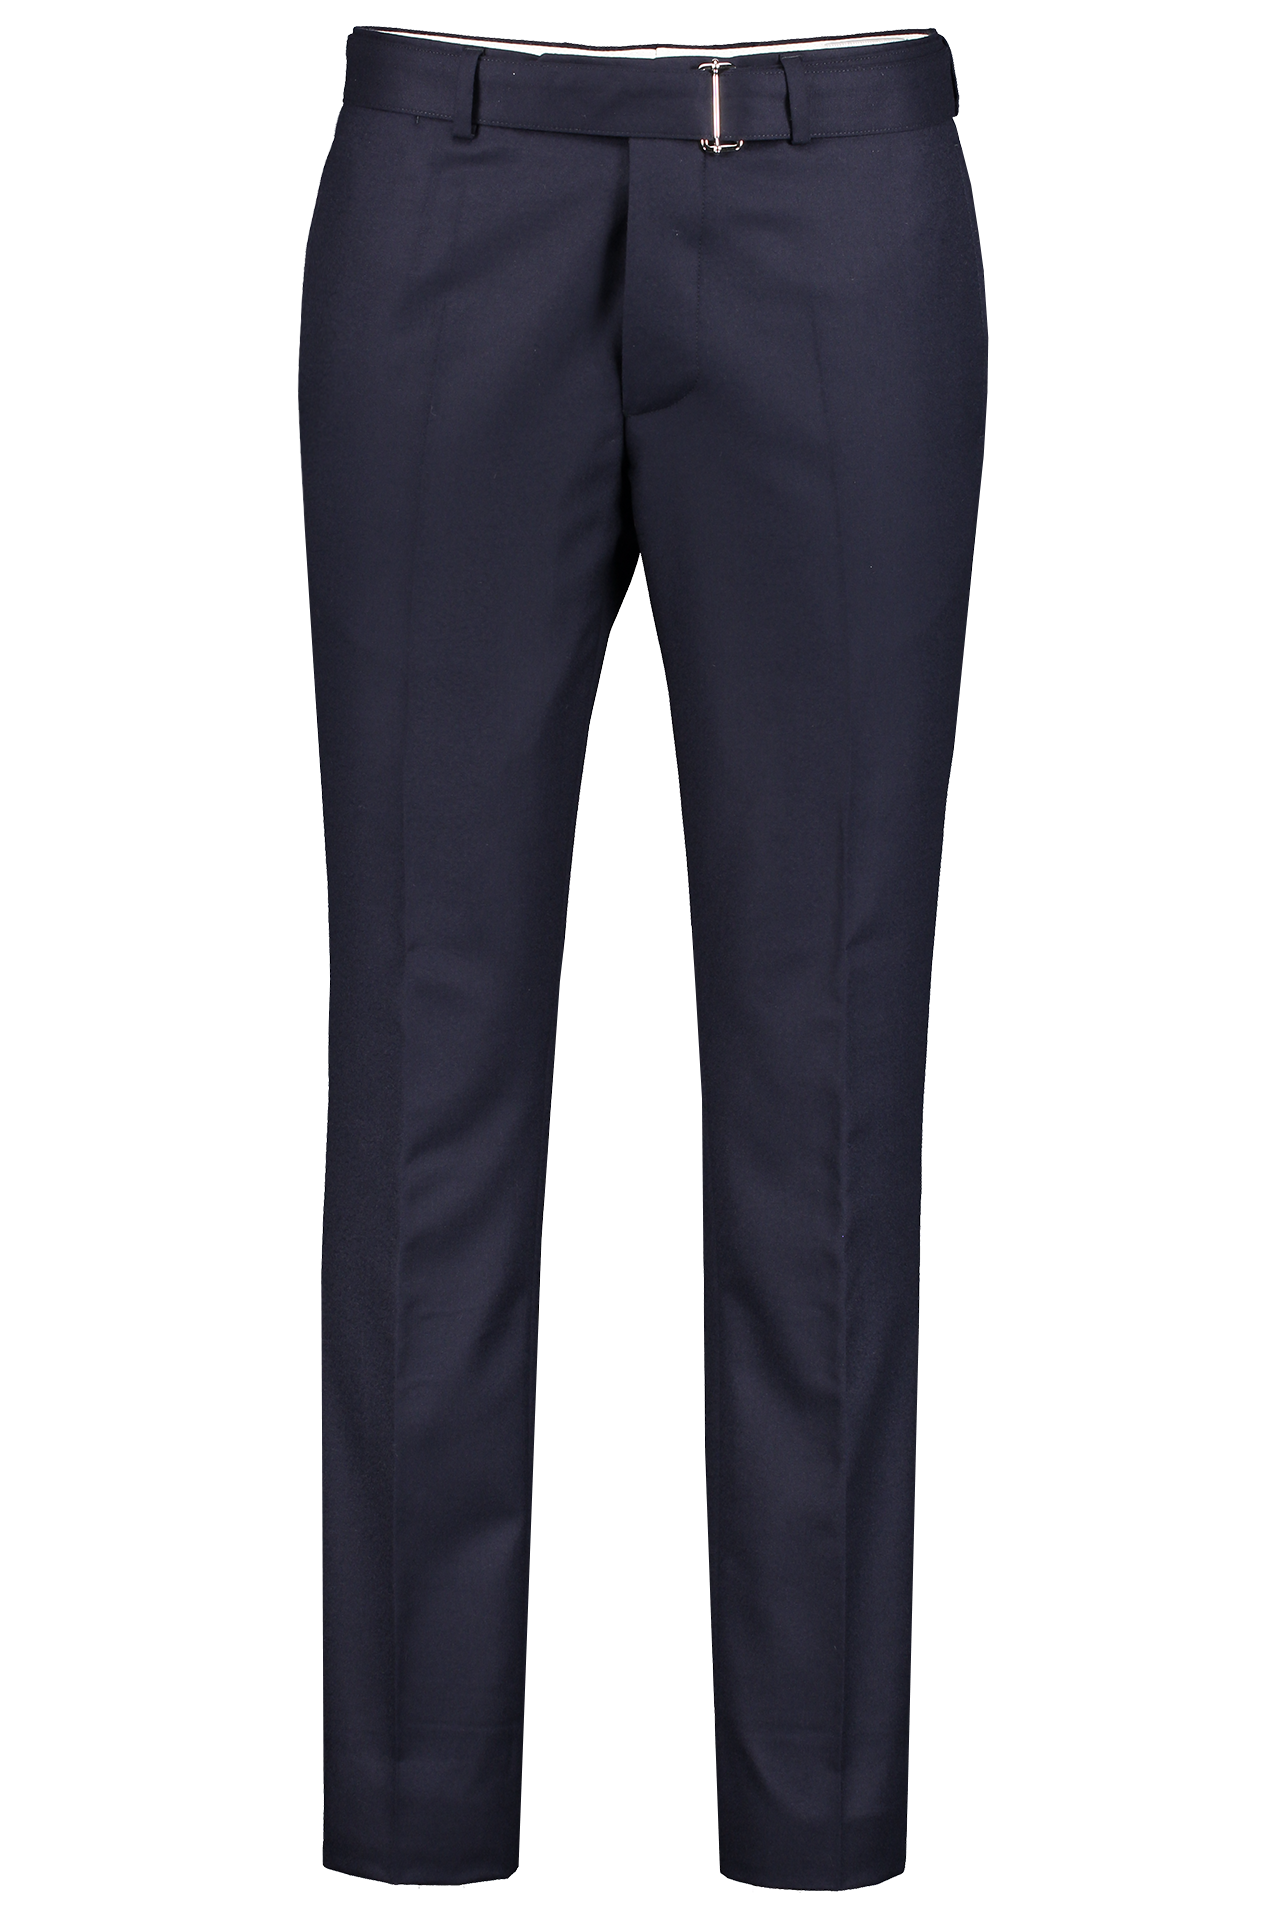 Officine Générale Front Image Paul Flannel Pant Navy